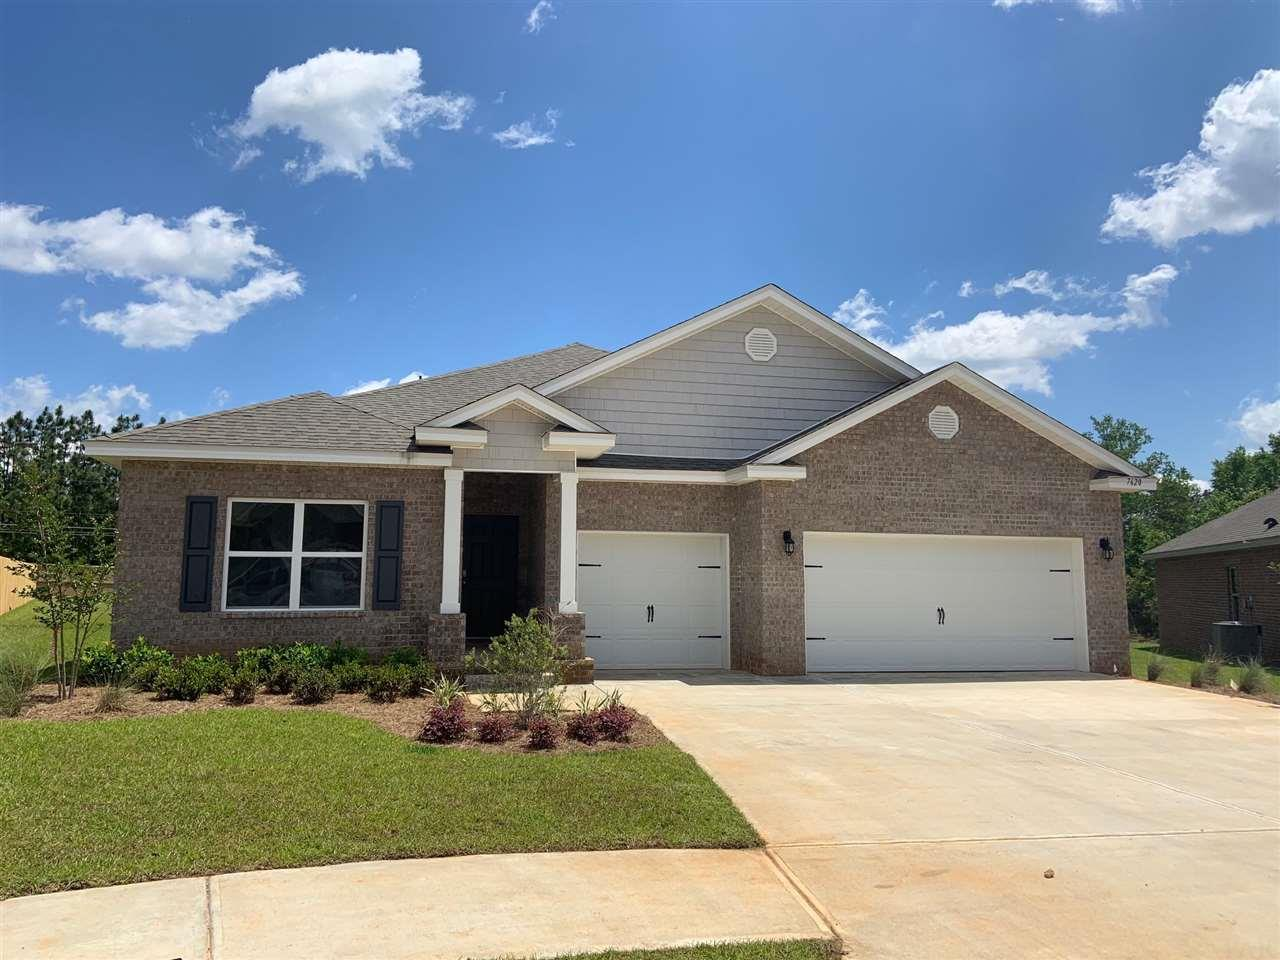 7620 Burnside Loop, Pensacola, FL 32526